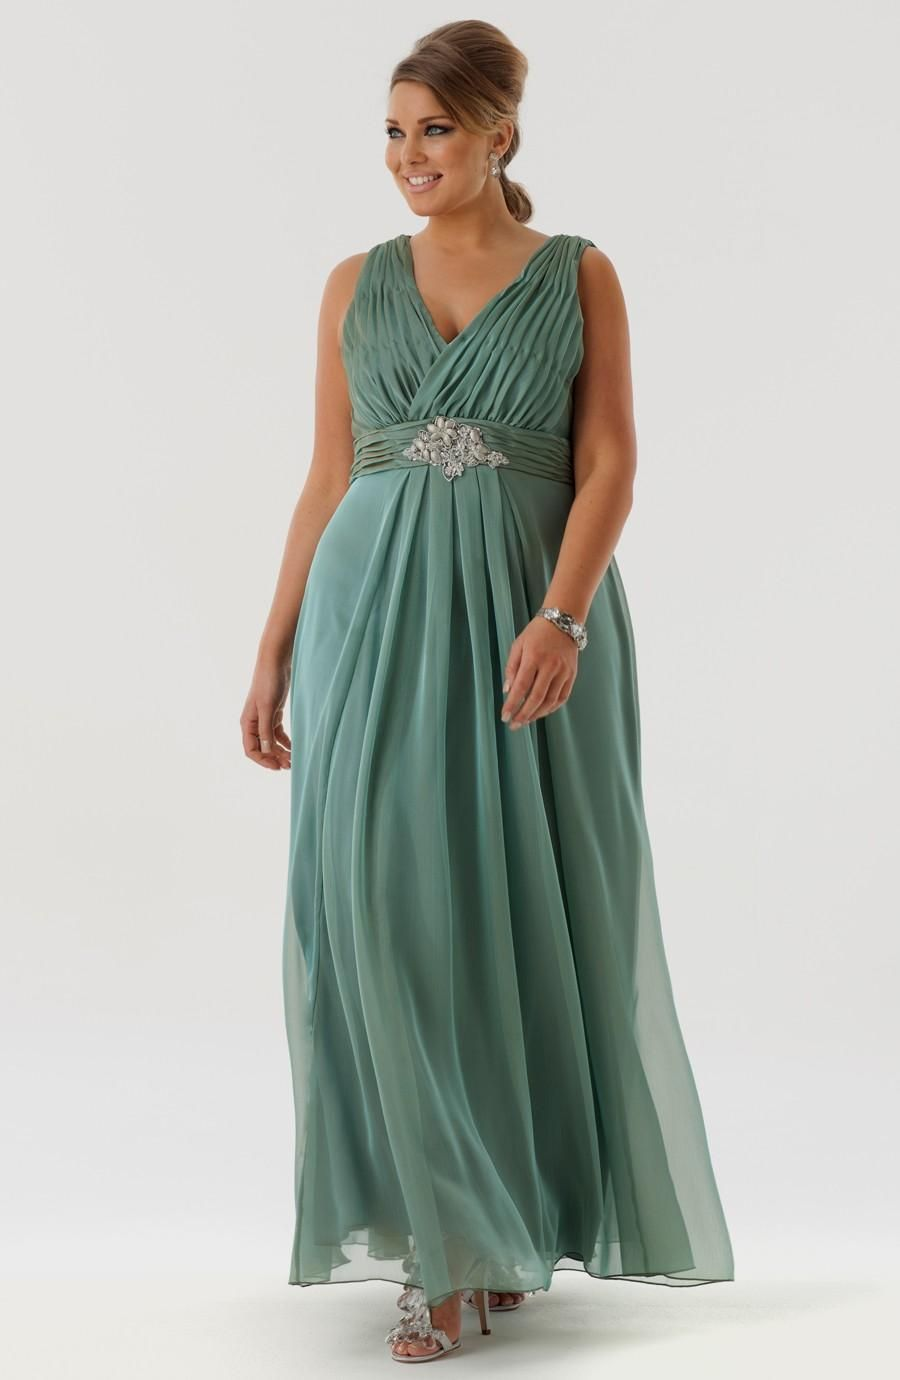 Maternity dresses for plus size special occasions | Wedding dress ...